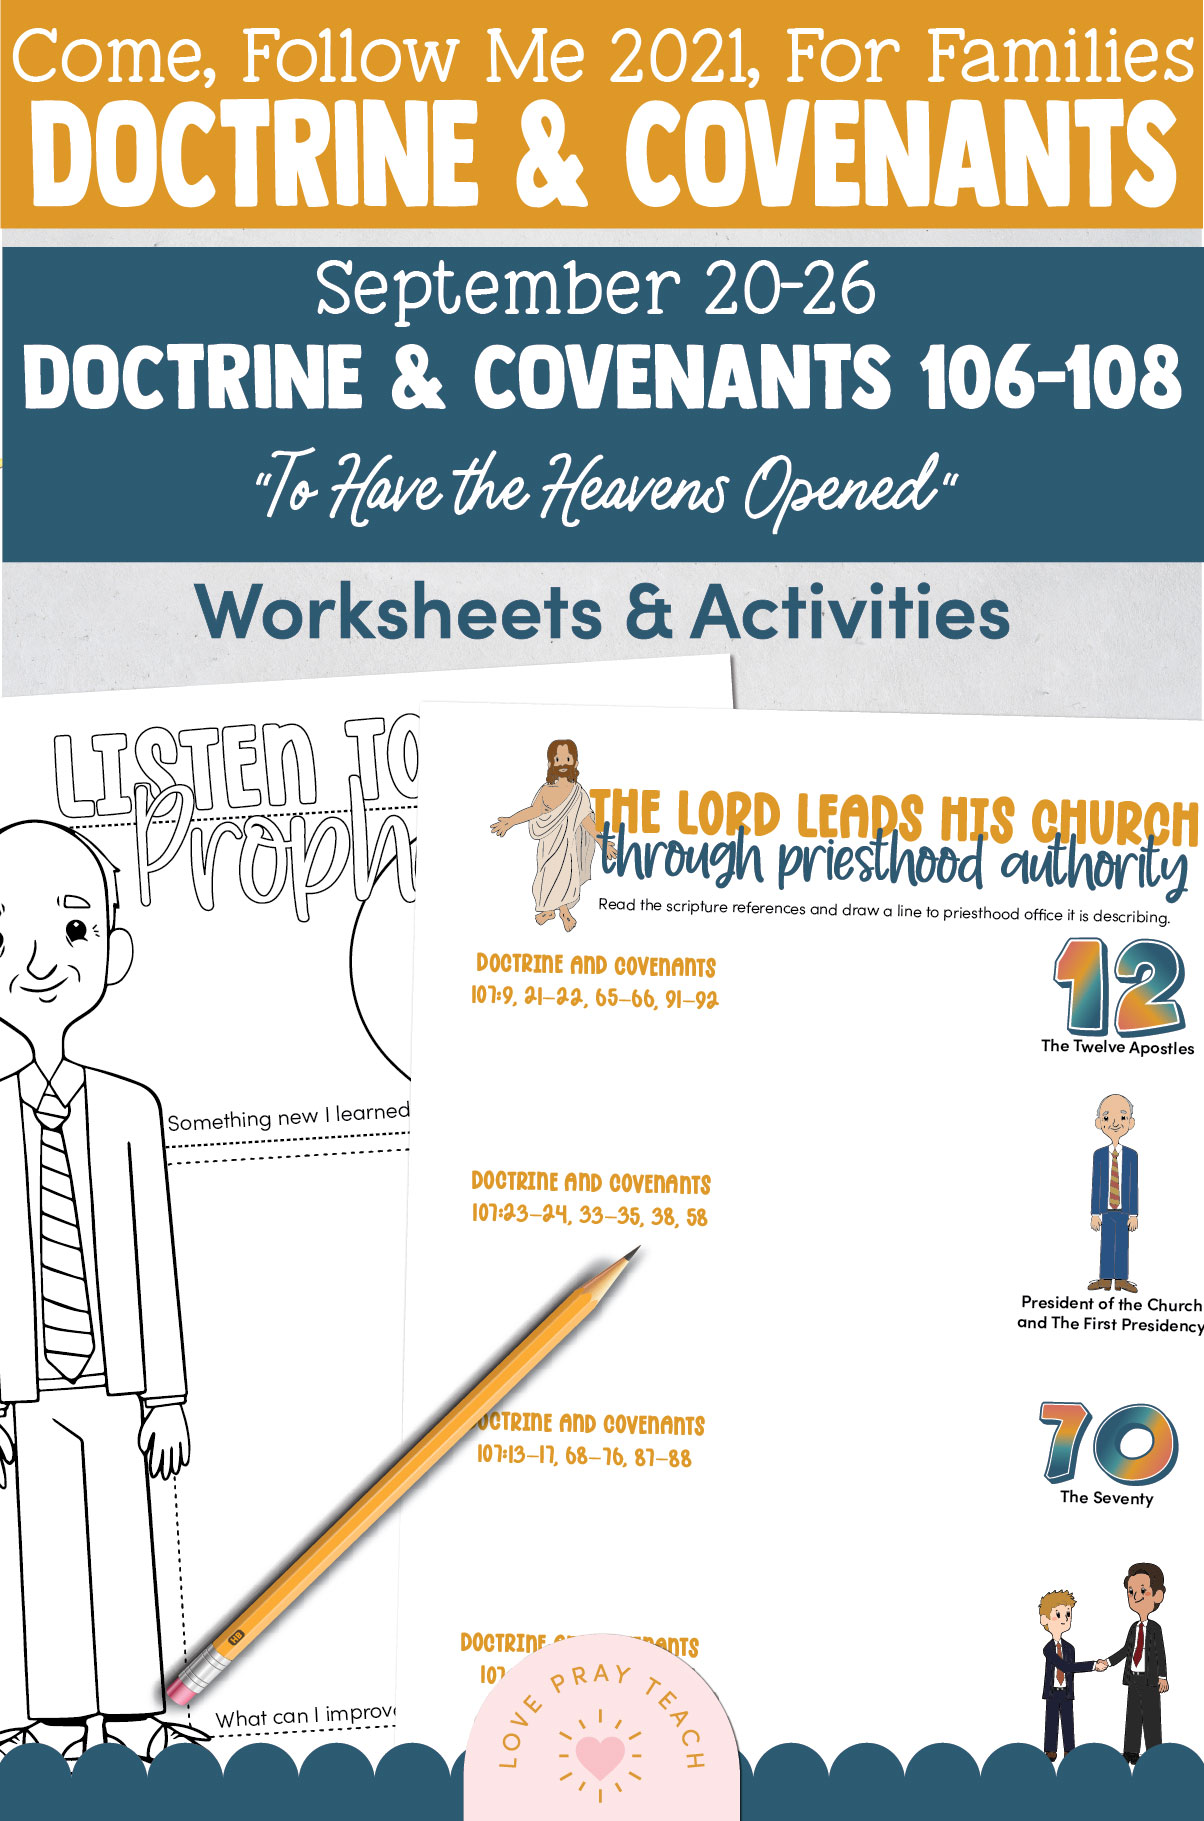 """Come, Follow Me—For Individuals and Families: Doctrine And Covenants 2021, September Week 4 Doctrine and Covenants 106-108: September 20-26, """"To Have the Heavens Opened"""""""